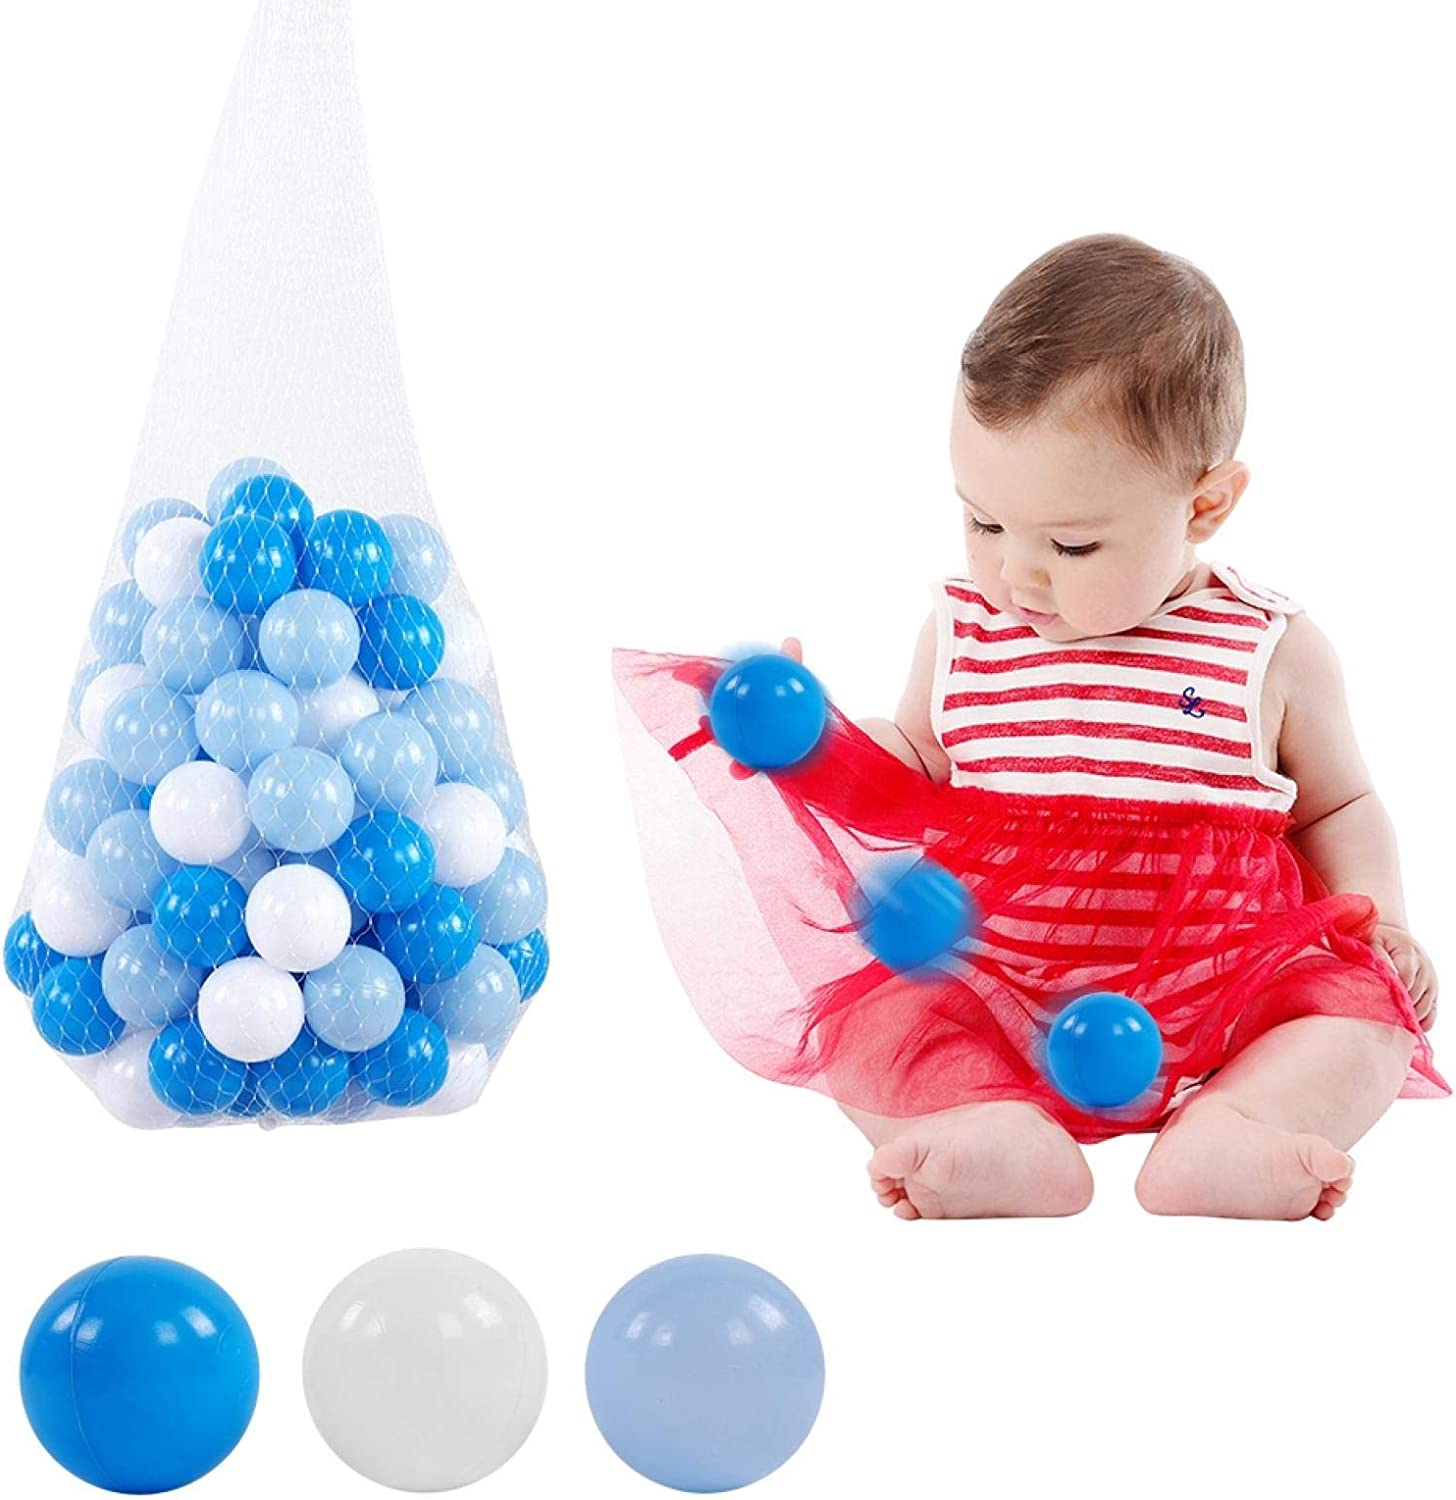 100pcs OFFer LDPE Baby Ocean Ball Toy Max 69% OFF Multicolor Plastic Ba 5.5cm Pit